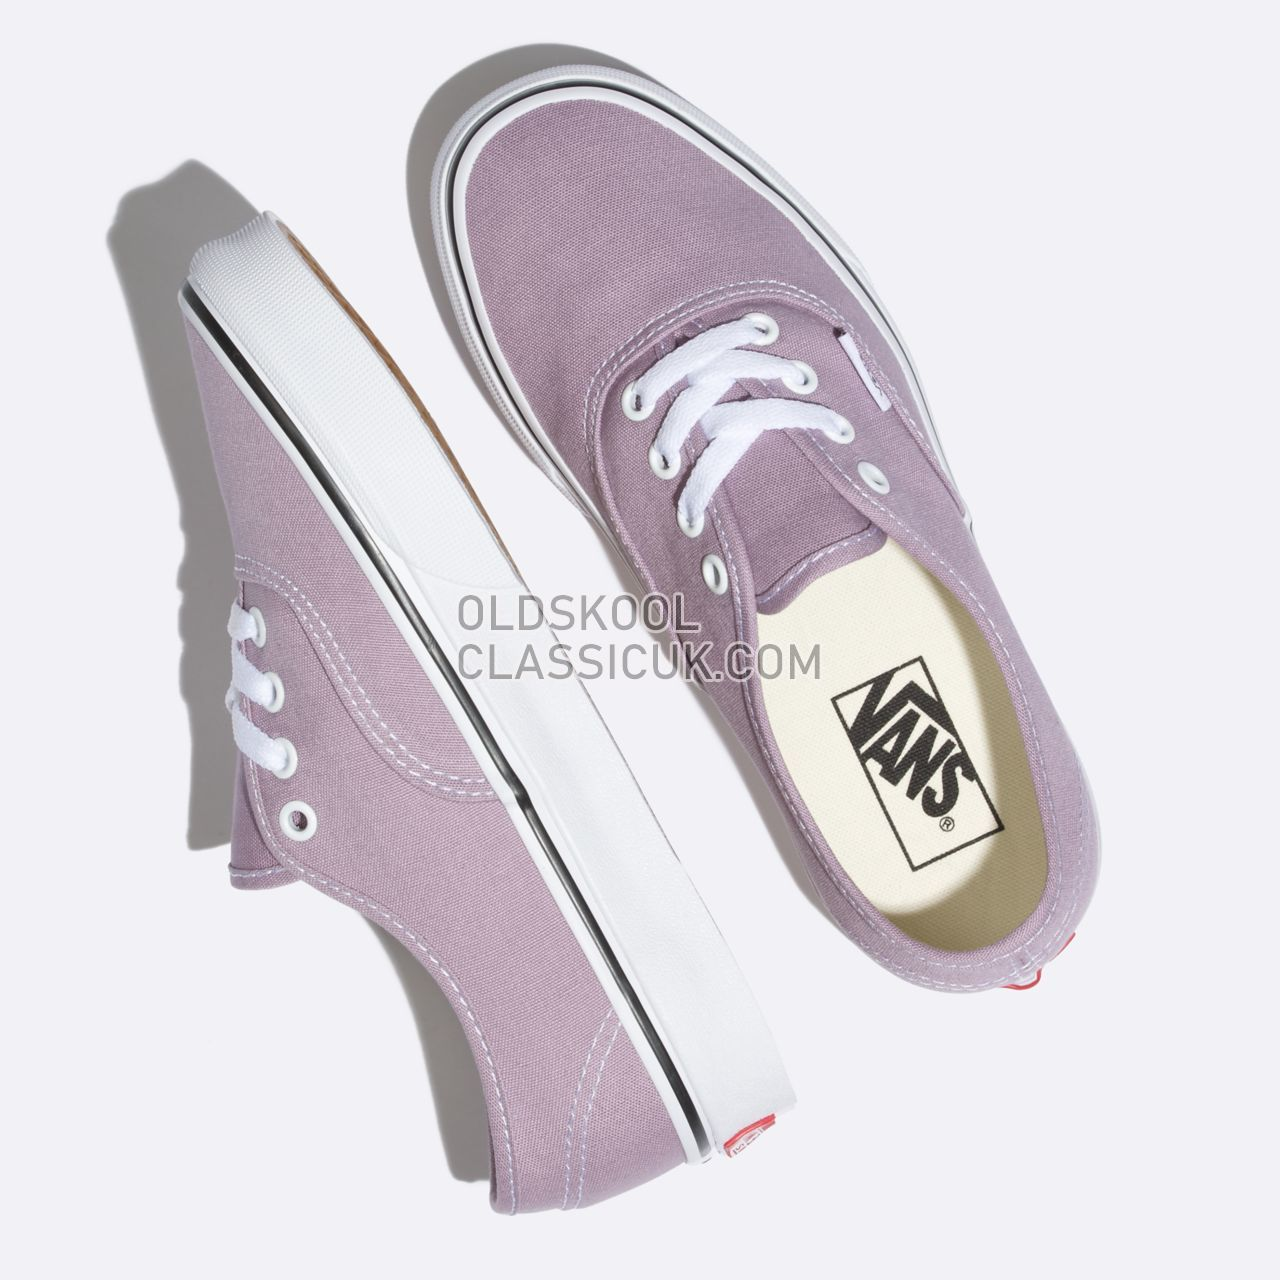 Vans Authentic Sneakers Mens Sea Fog/True White VN0A38EMOVS Shoes